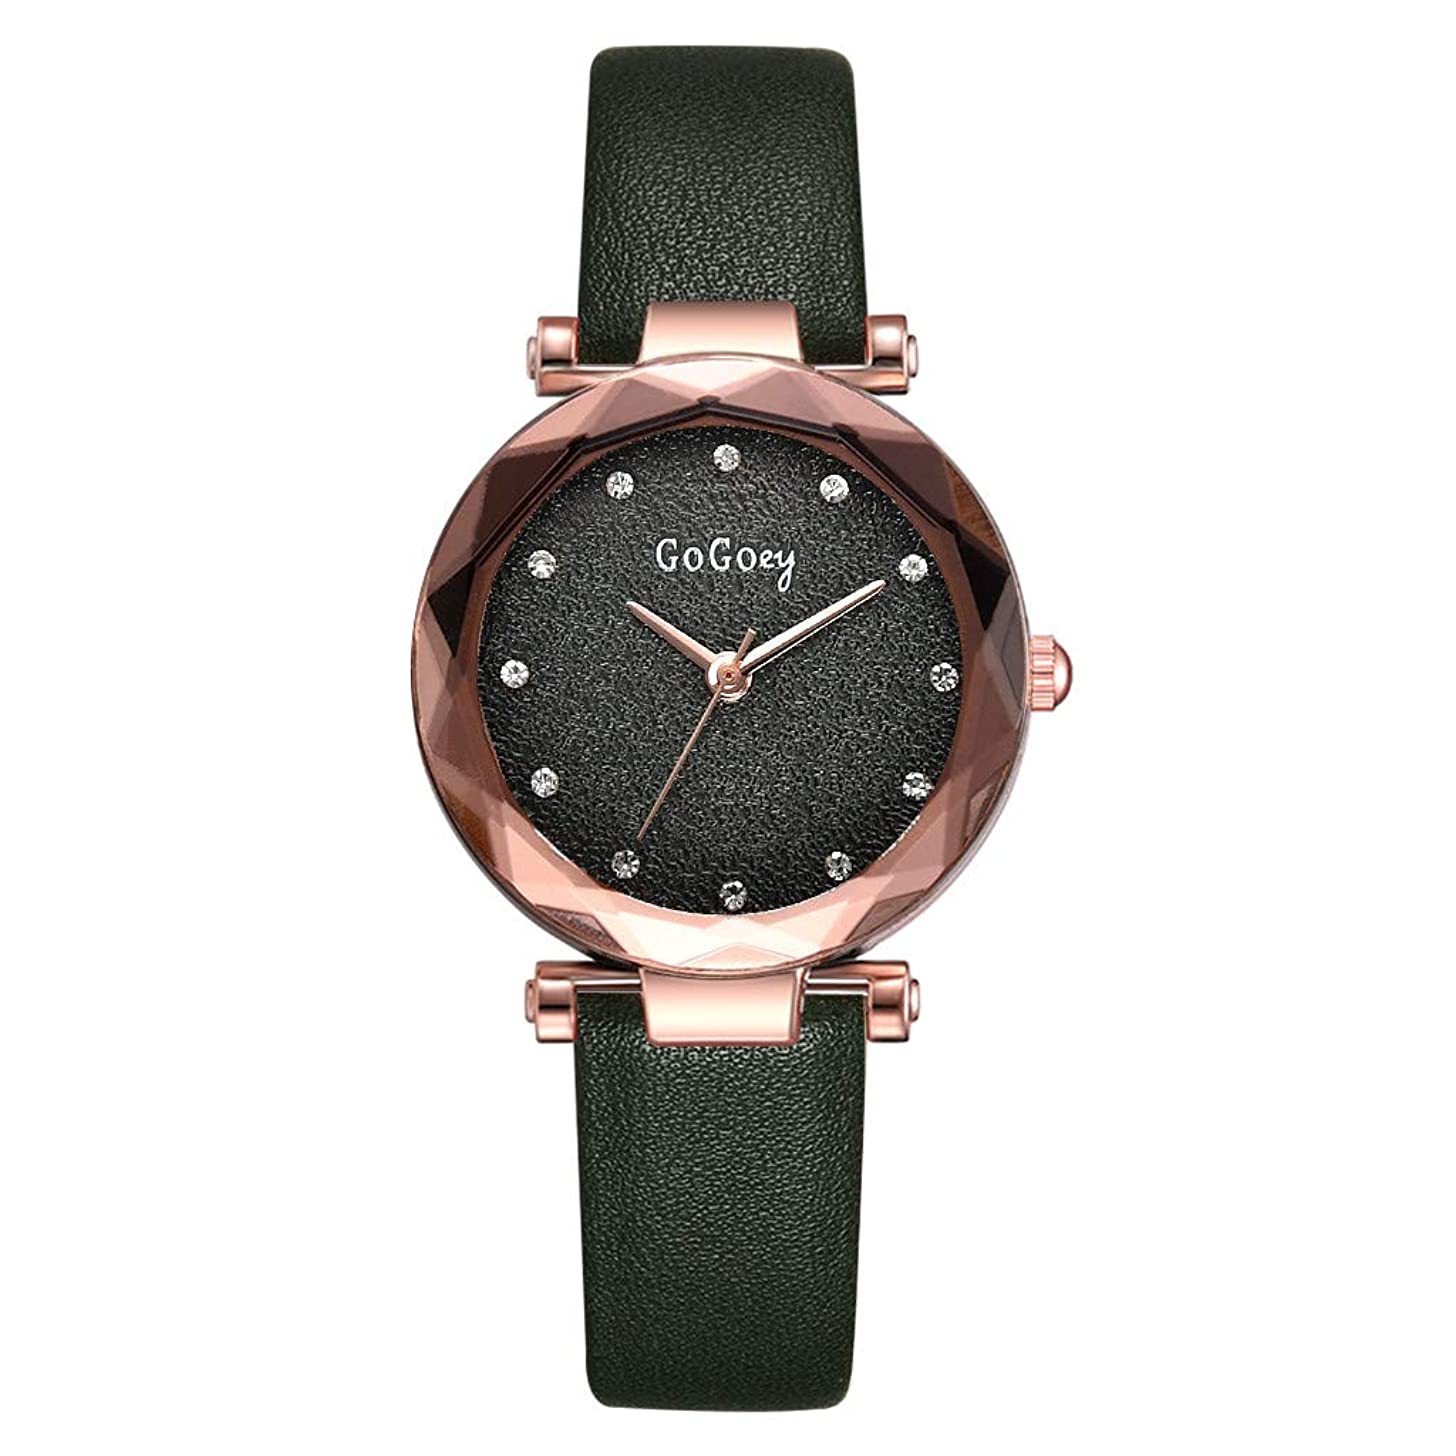 LUCAMORE Womens Quartz Wristwatch Exquisite Casual Watch Unique Dress Watch Rhinestone Dial with Leather Band